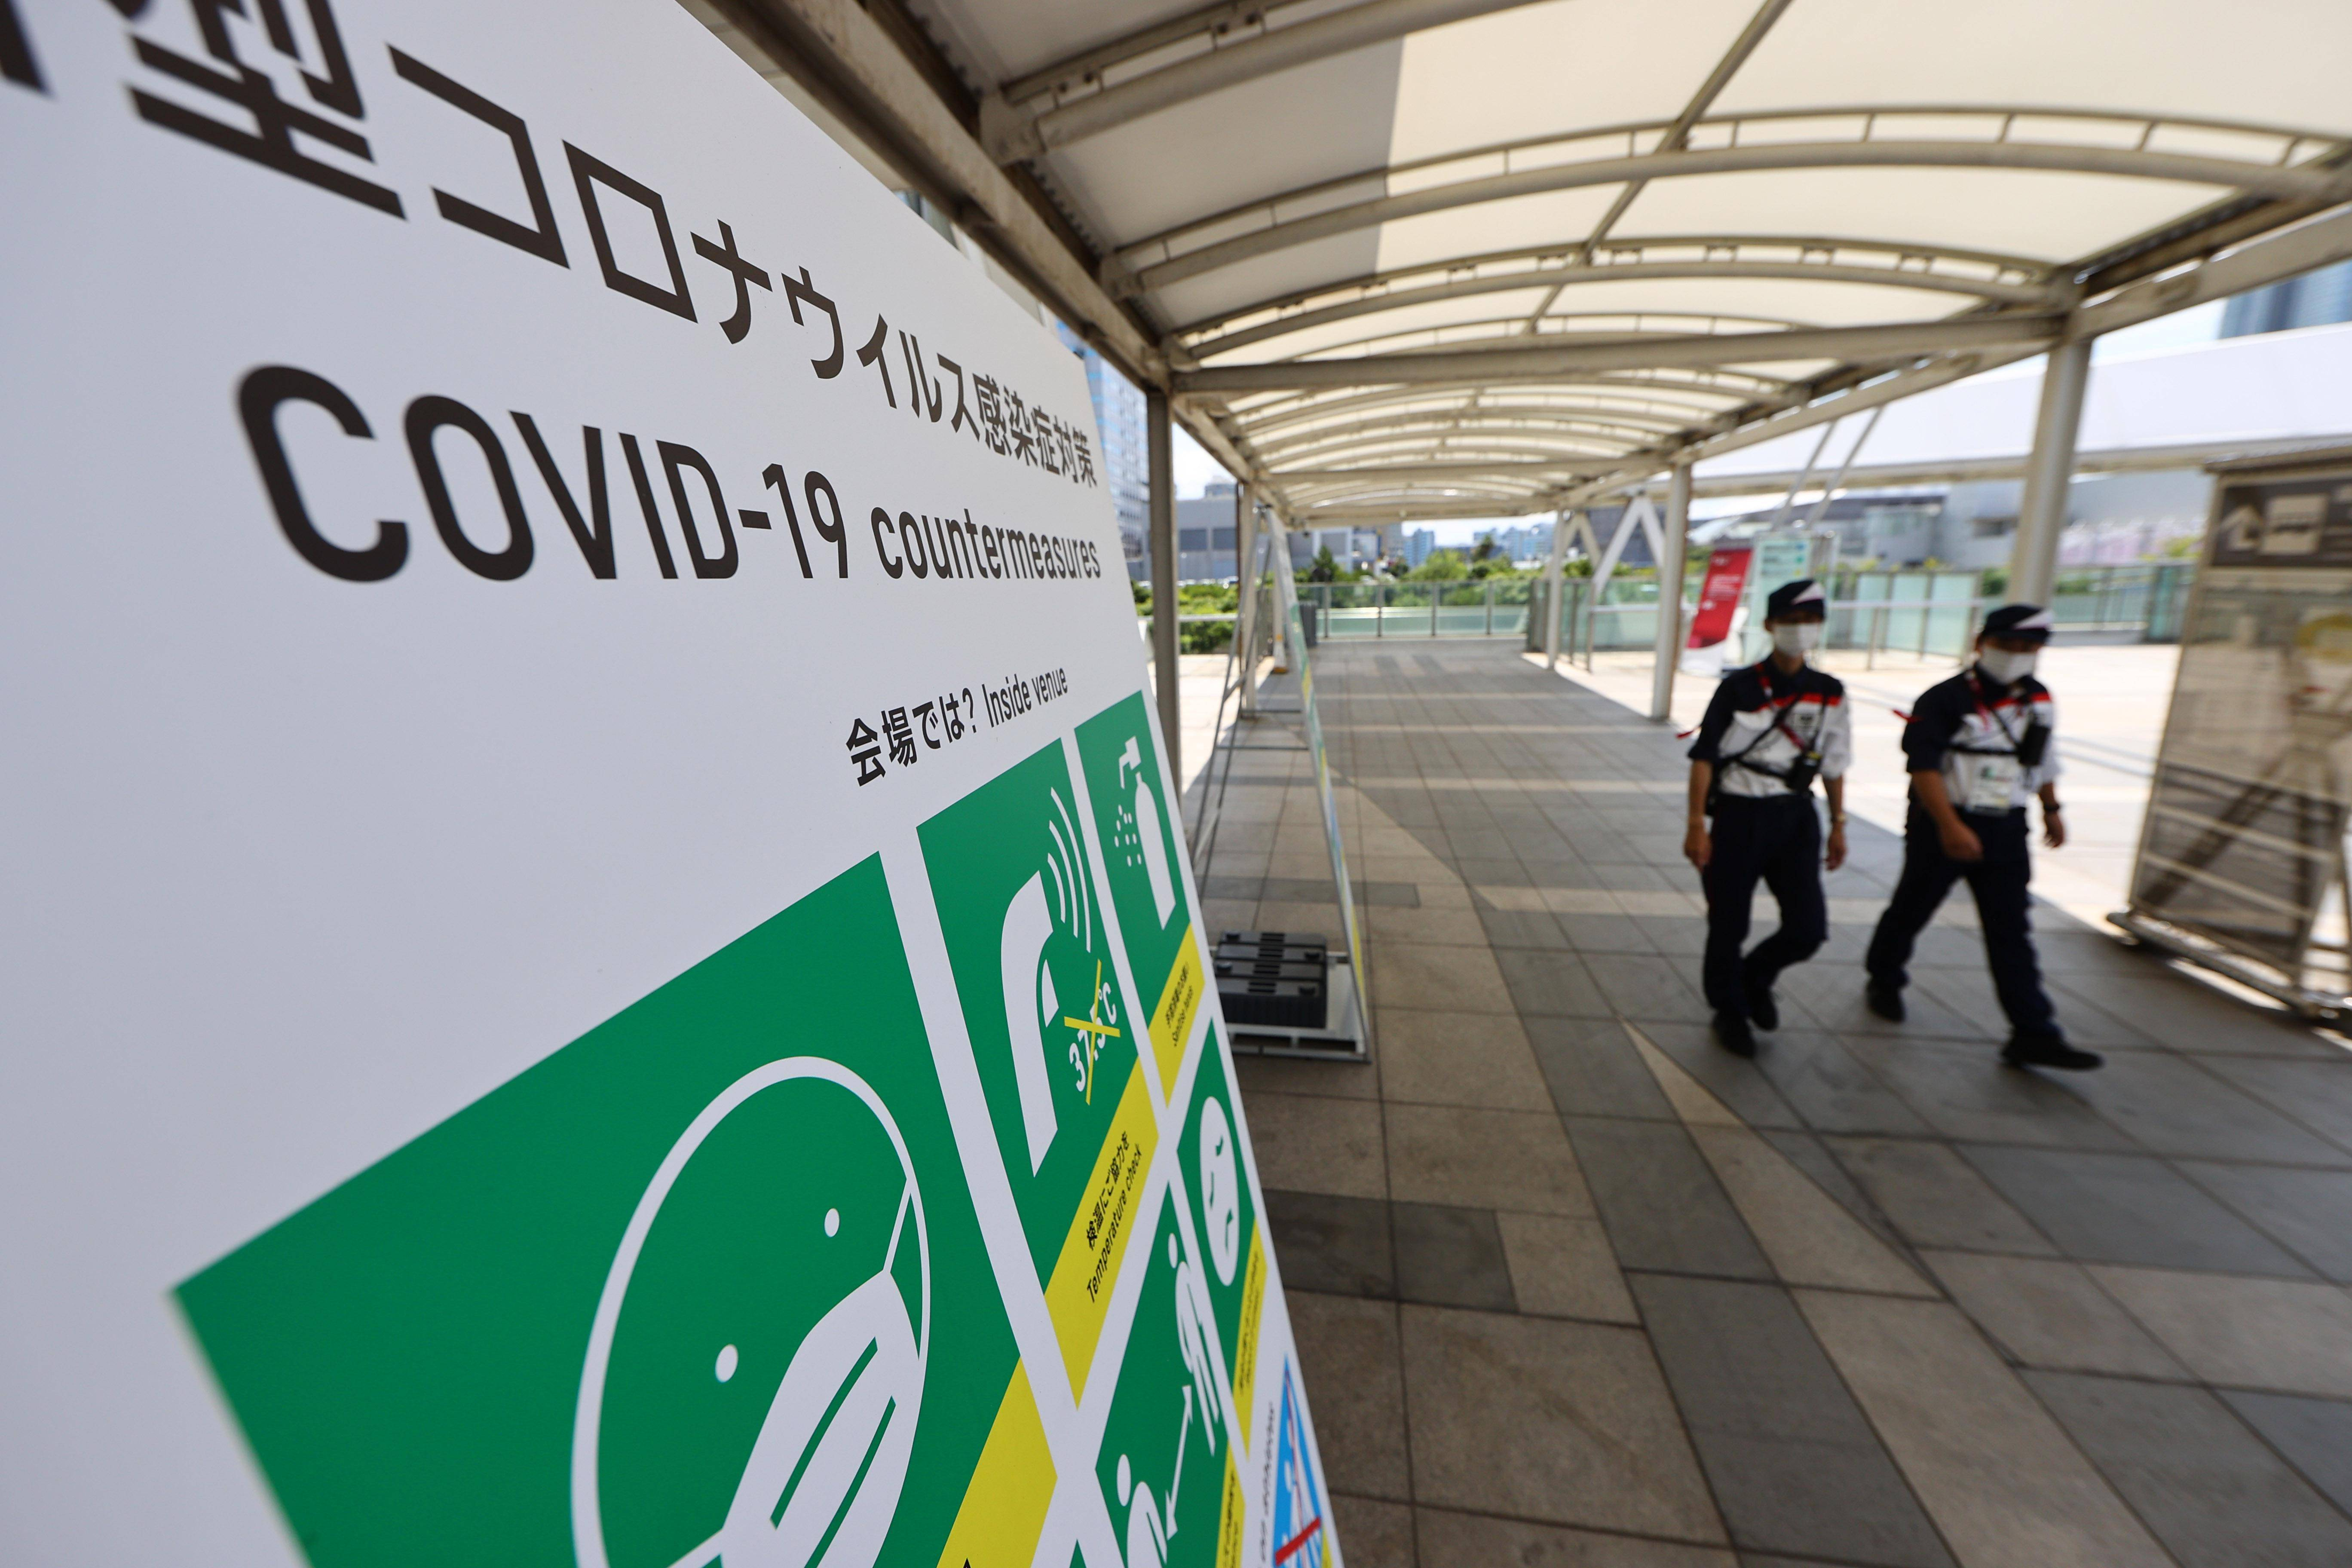 Tokyo Olympics: 7 new Covid-19 infections reported